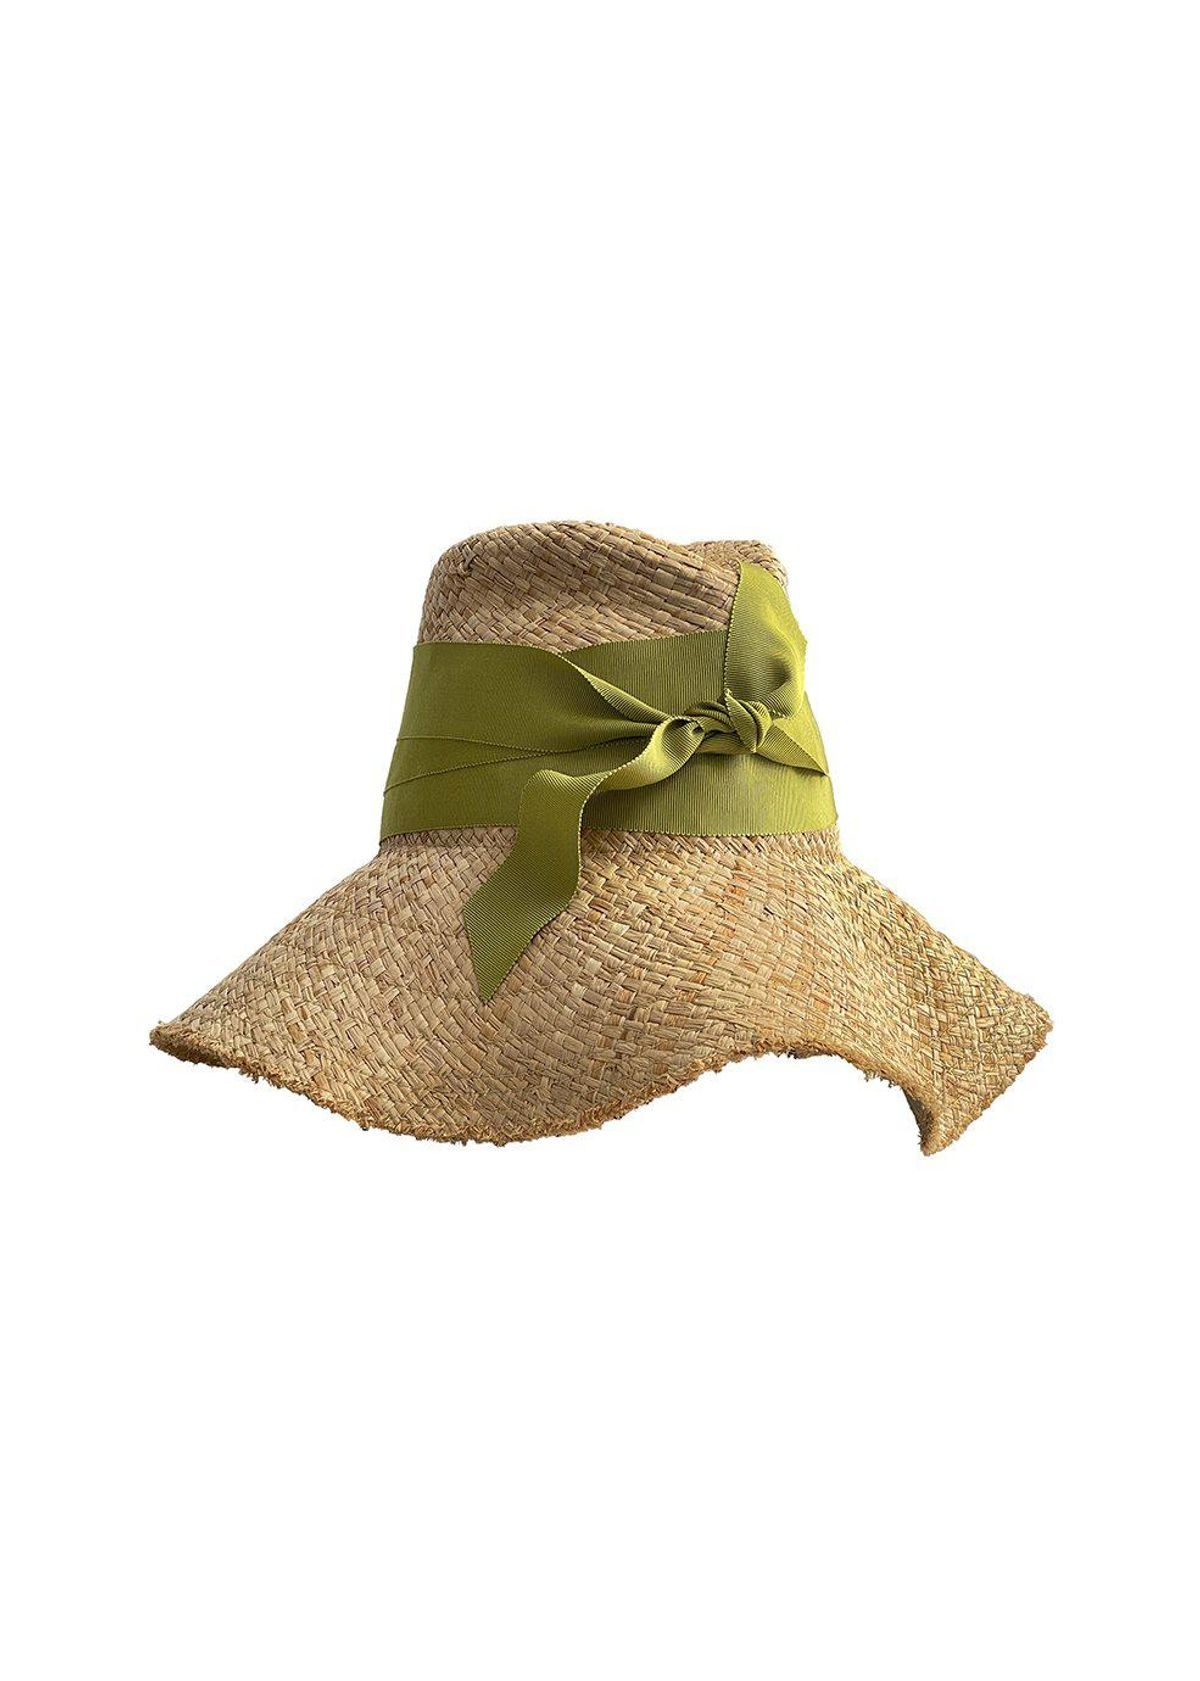 First Aid Hat in Lime